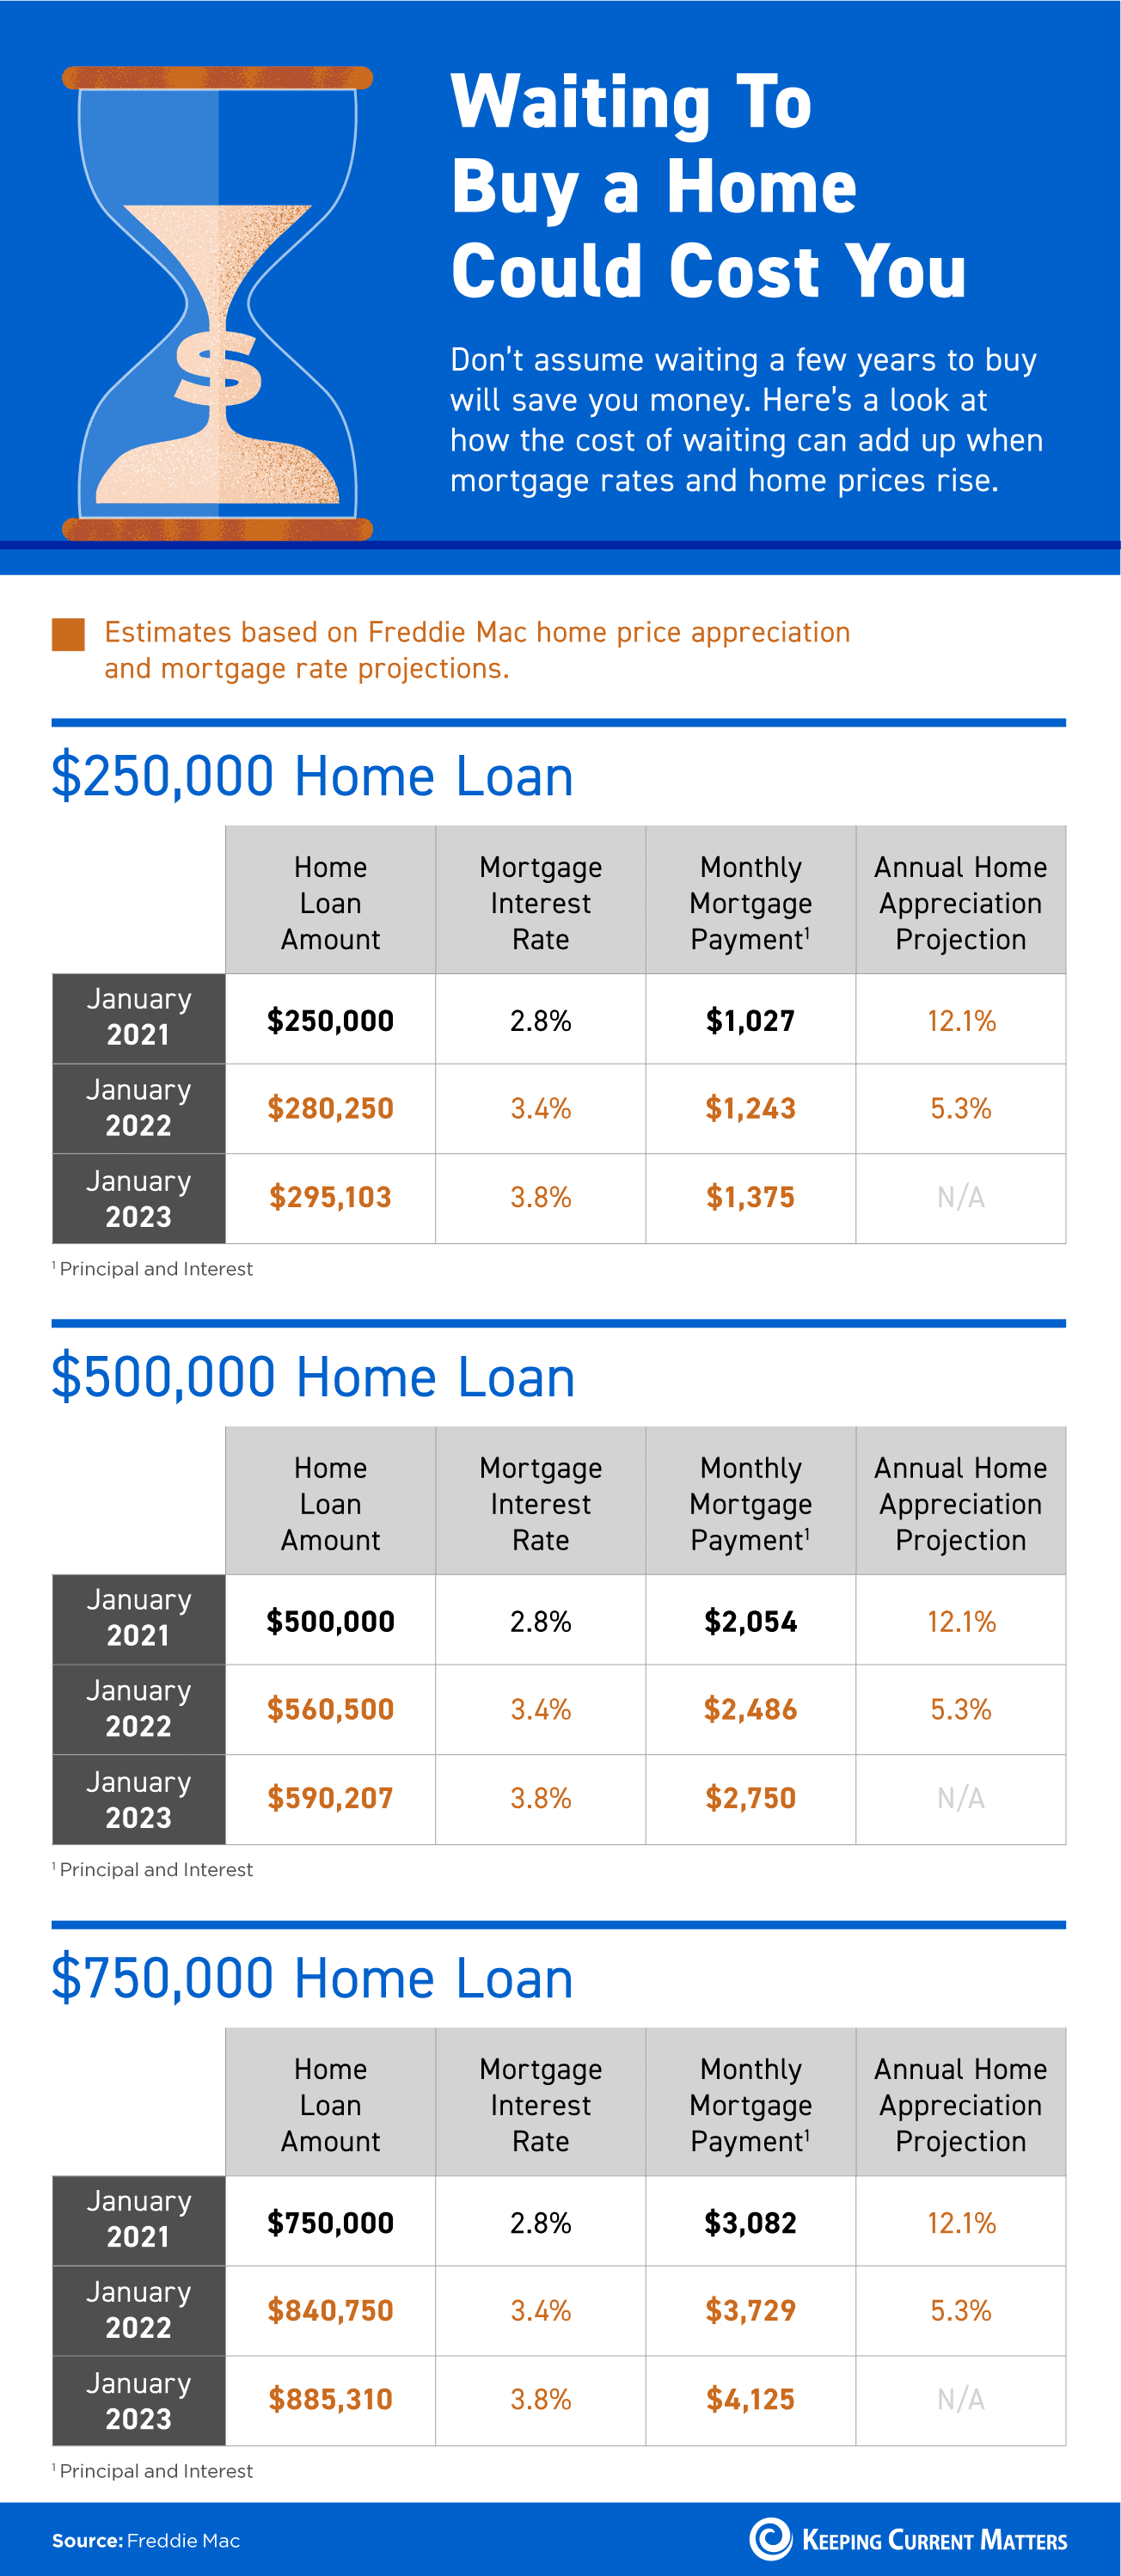 Waiting To Buy a Home Could Cost You [INFOGRAPHIC]   Keeping Current Matters